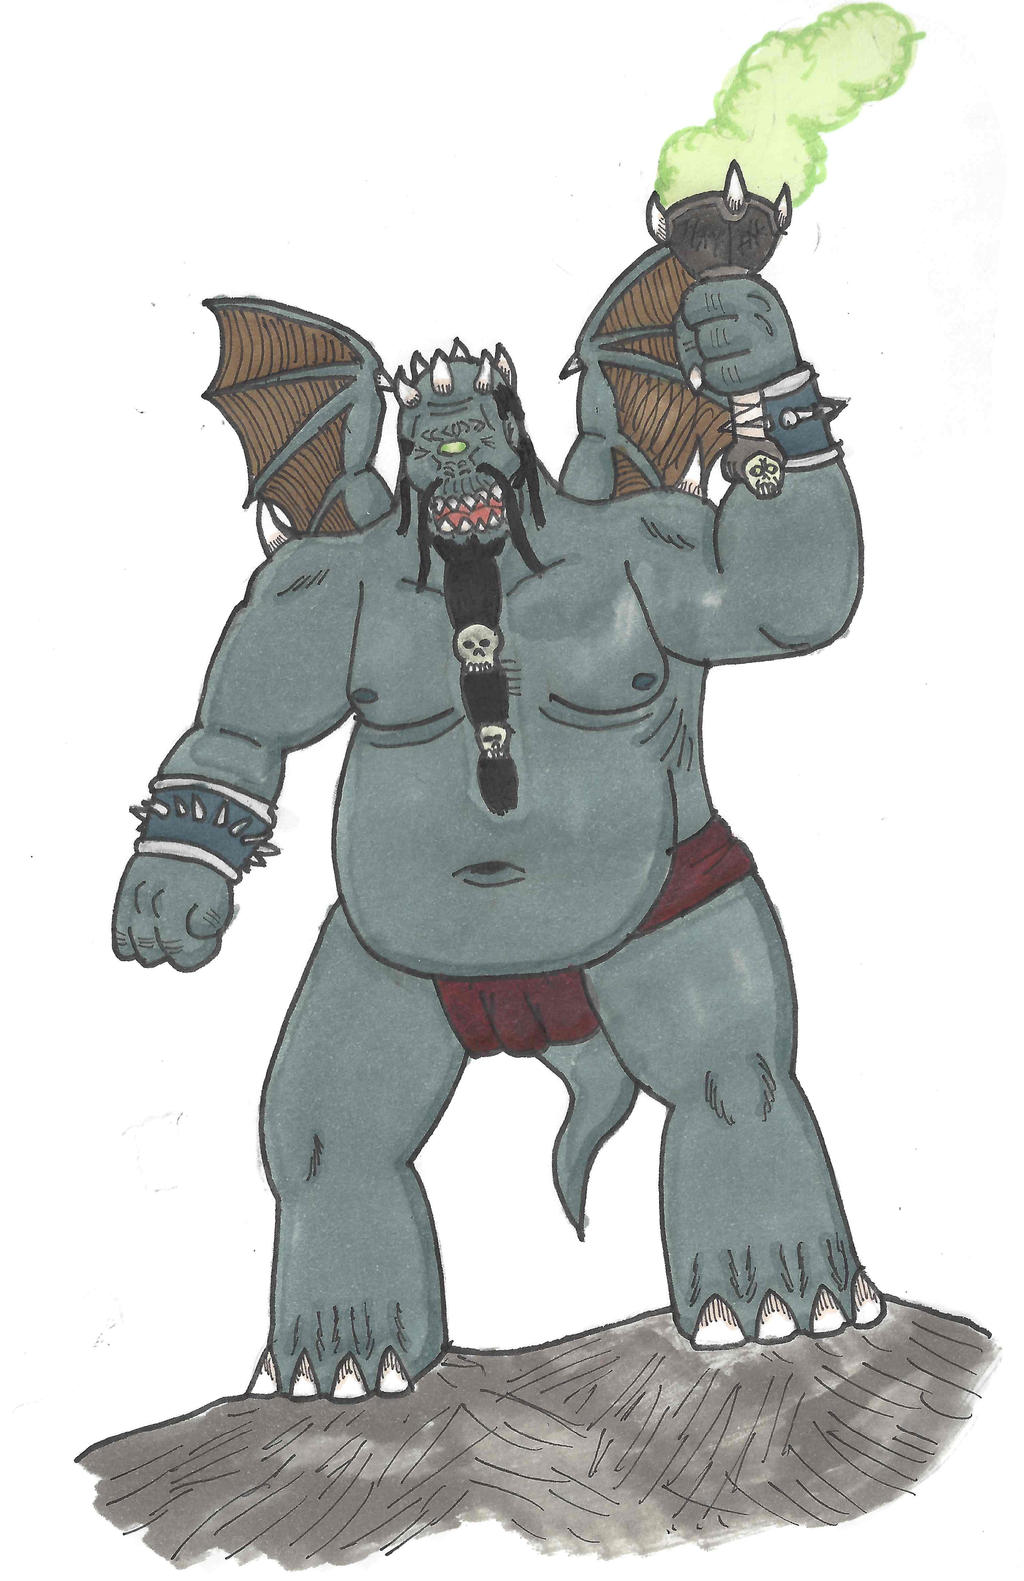 Fantasy Doodles 50 #2: Orcus